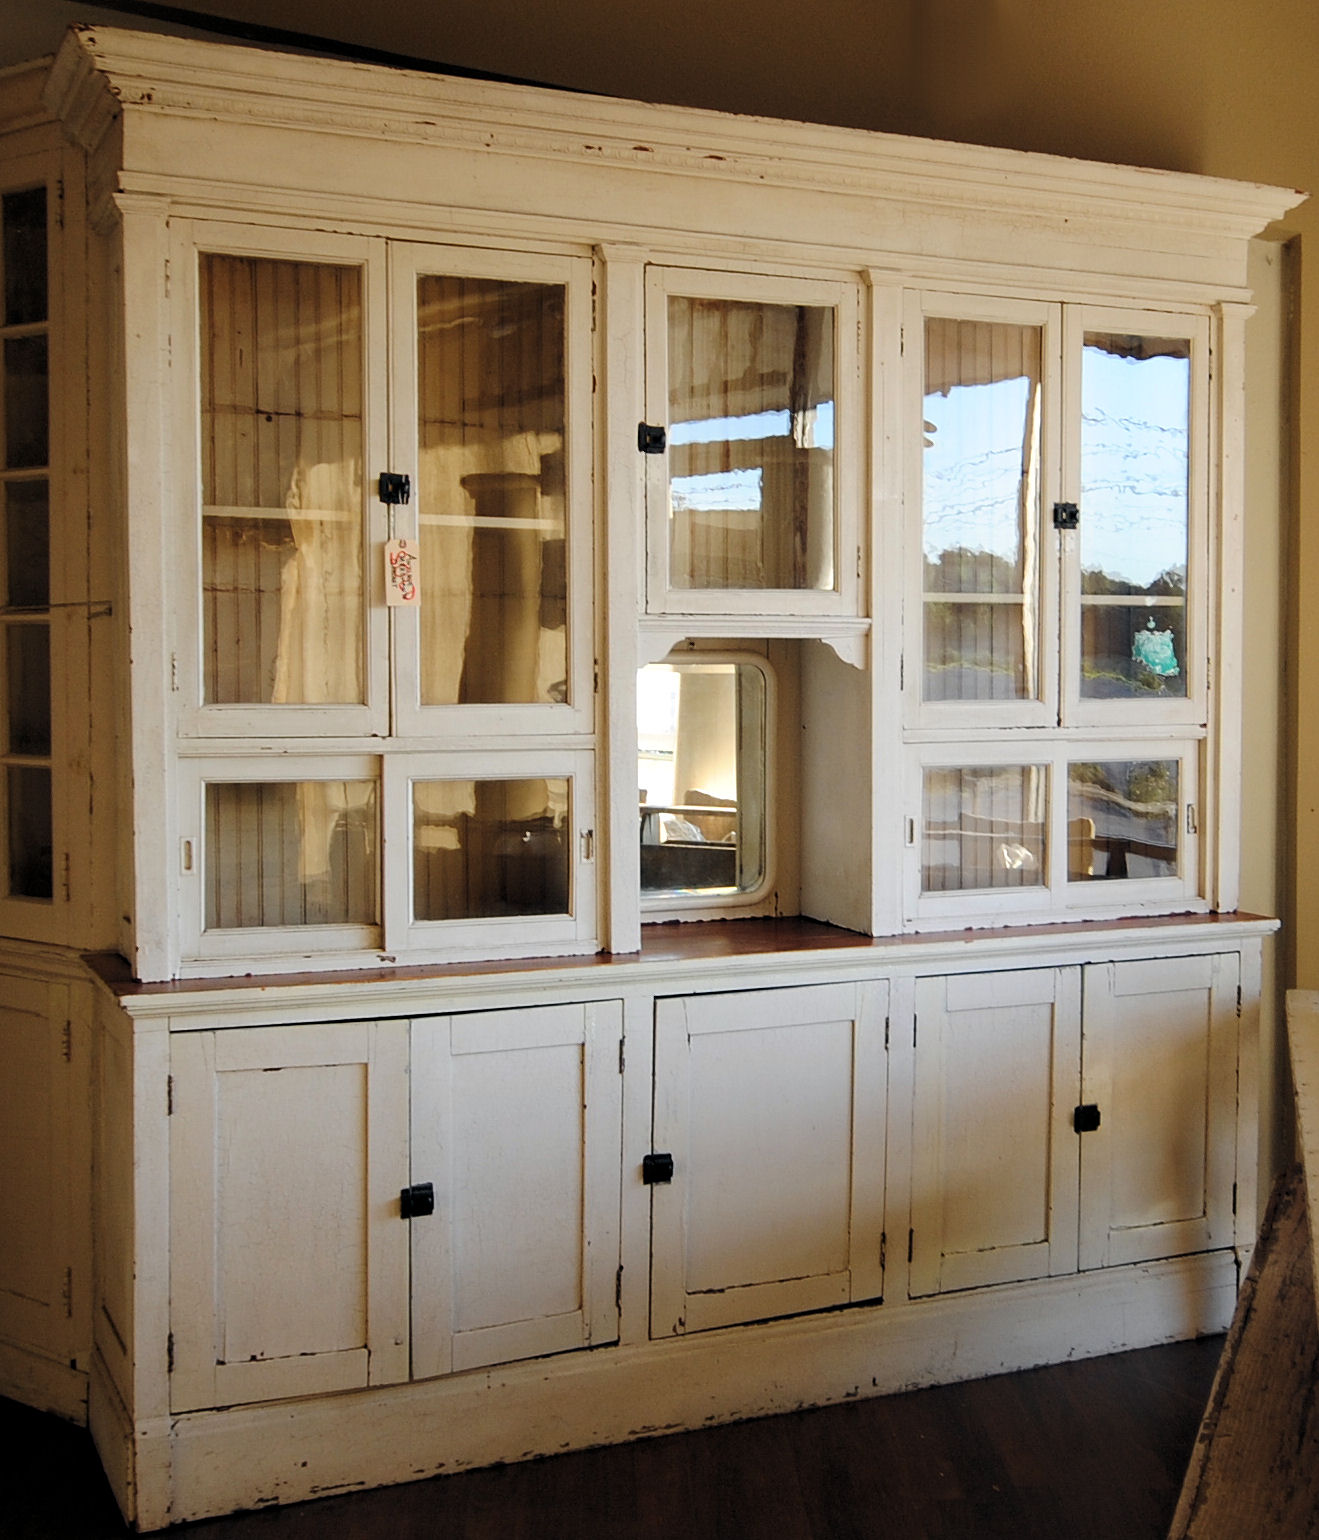 Farm Kitchen Cabinets Laurieanna 39s Vintage Home Farmhouse Friday Maiden Post